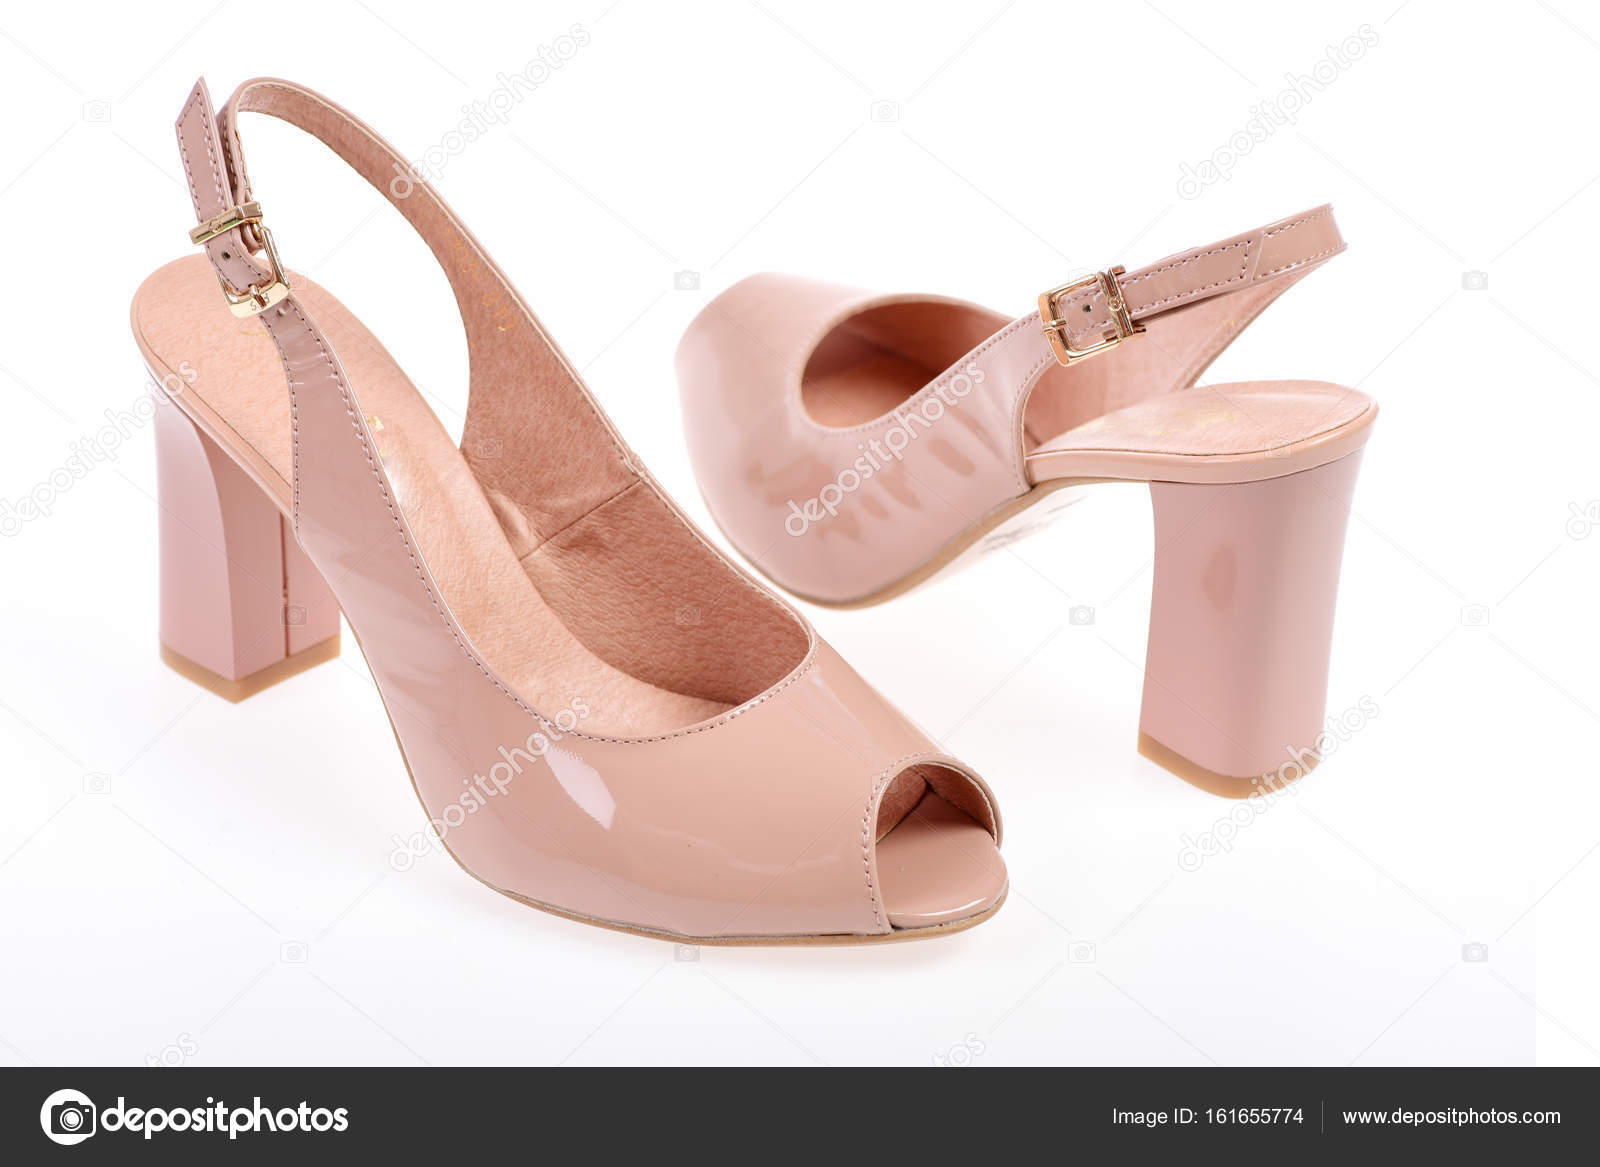 1805e7672a4 Female sandals isolated on white background. Fashion and beauty concept.  Womens patent leather shoes